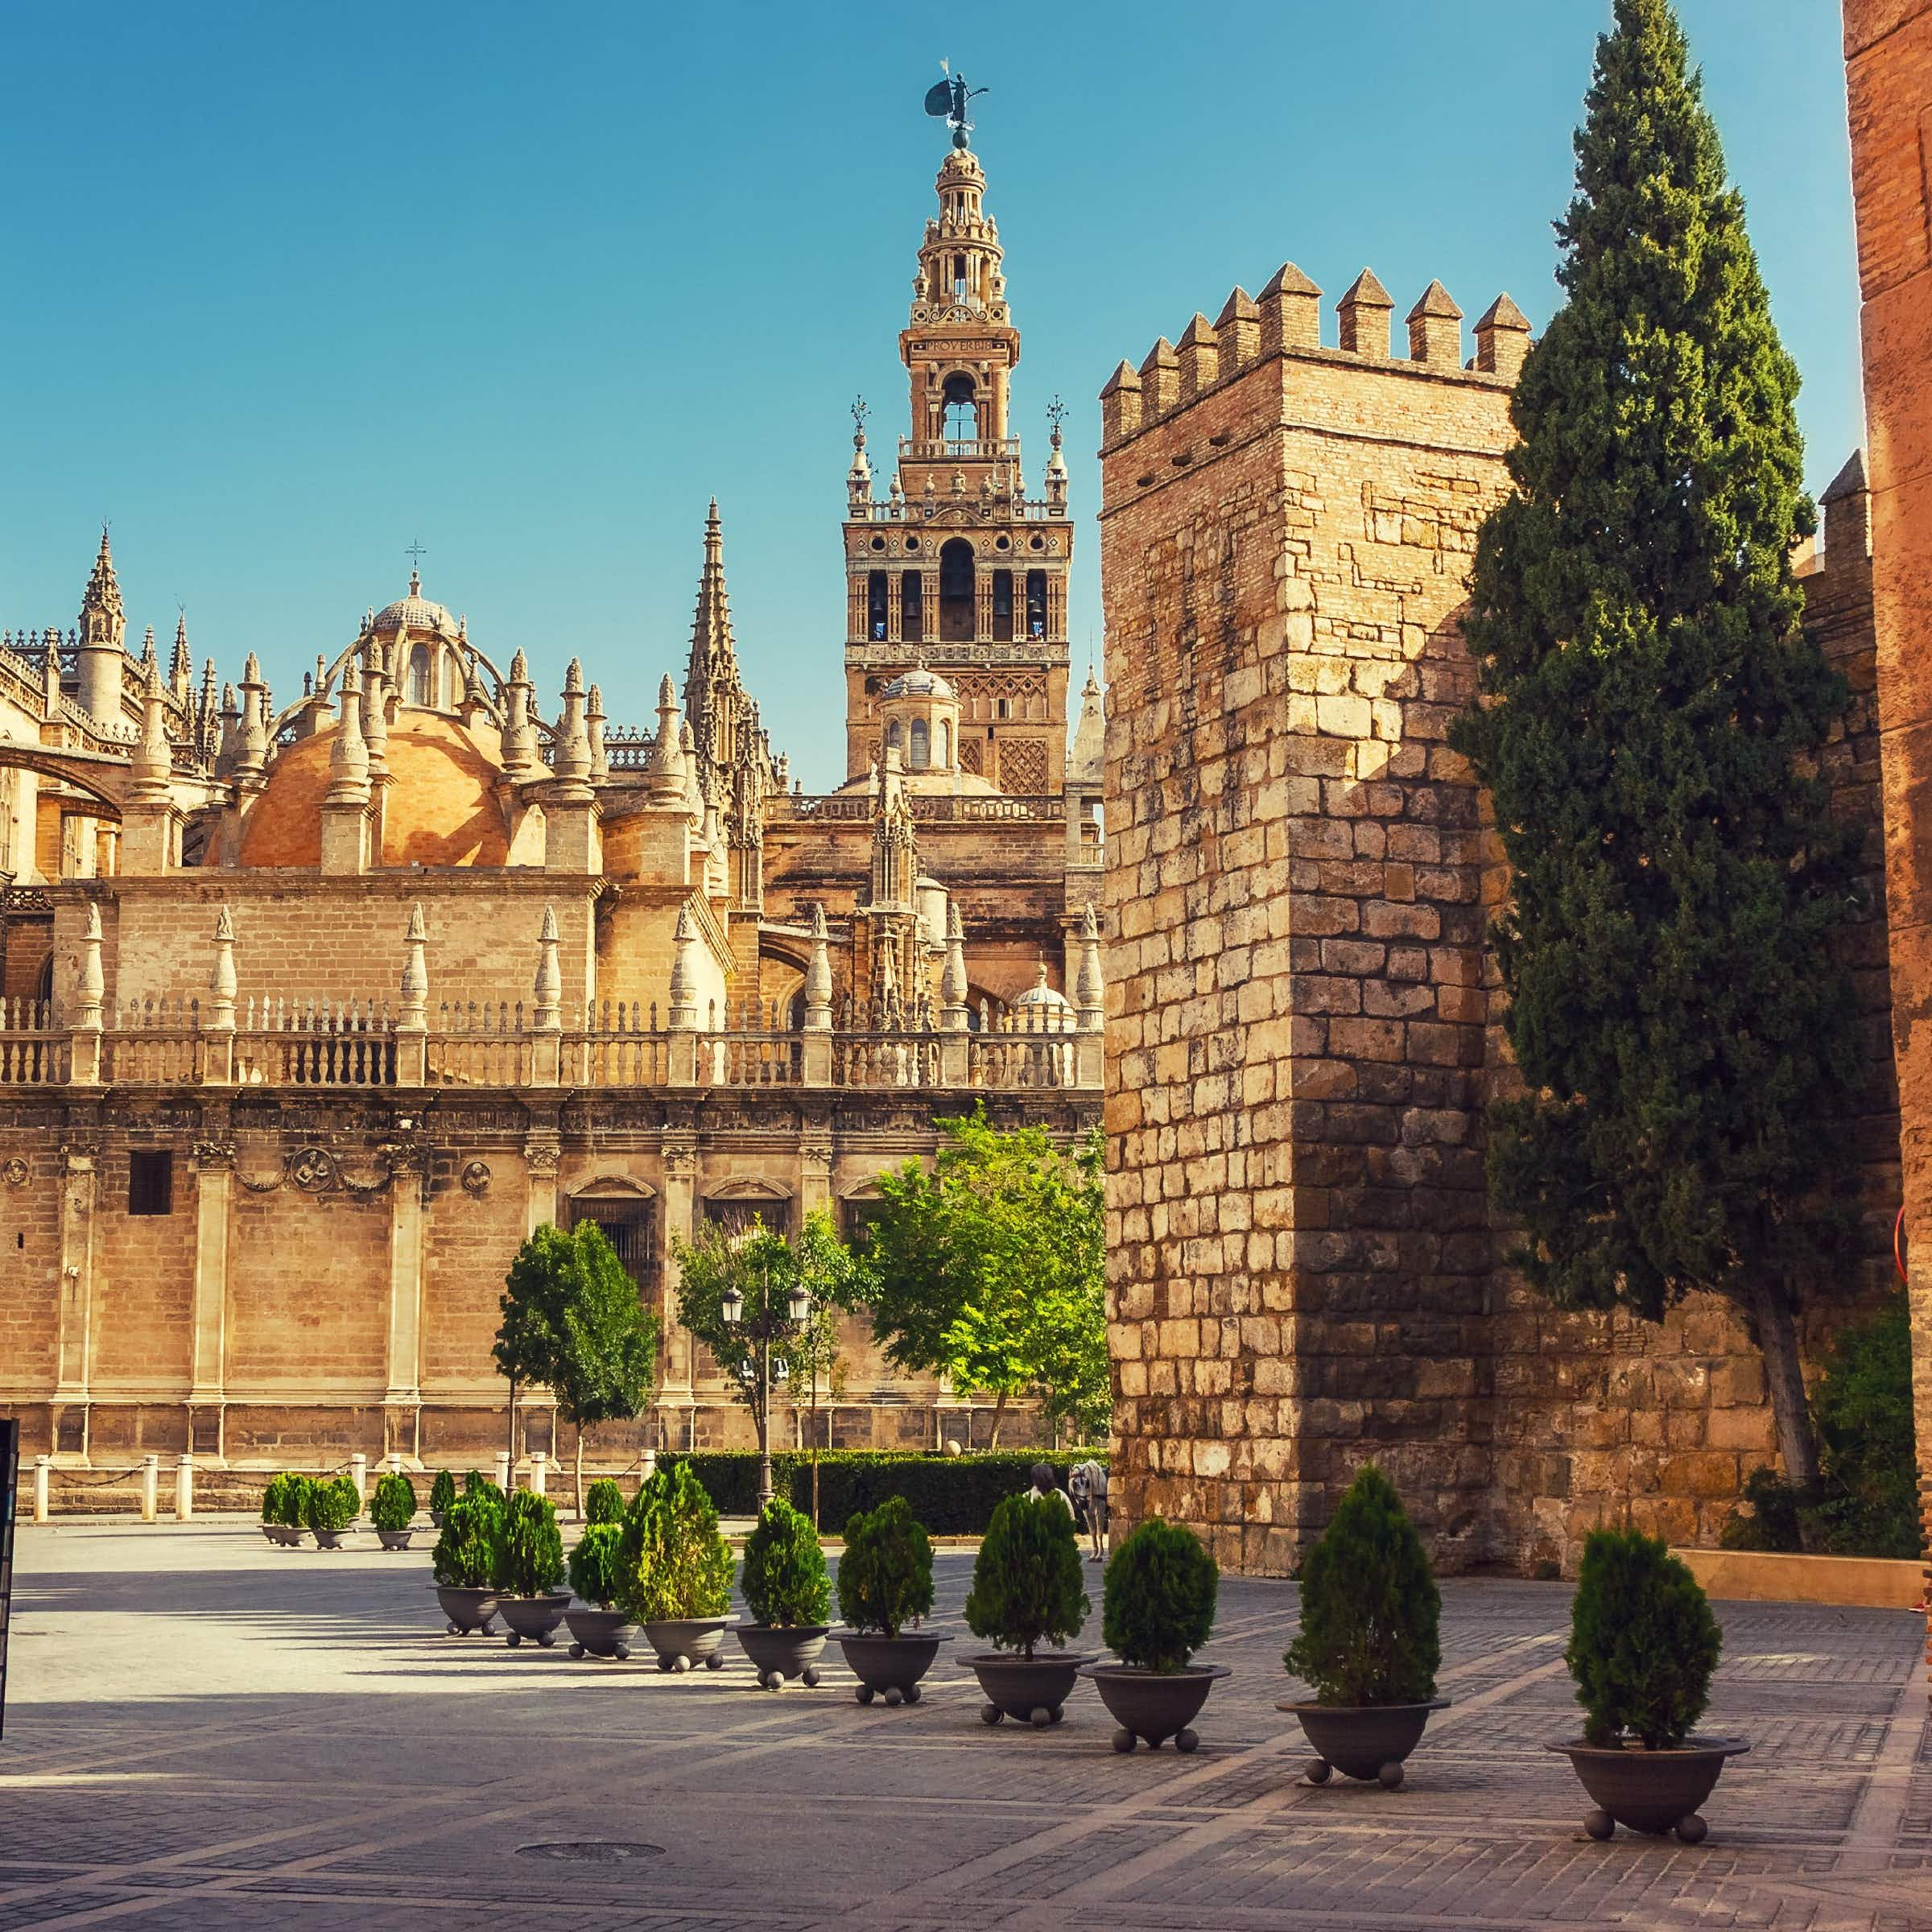 Does your outfit comply with Seville Cathedral's dress code?